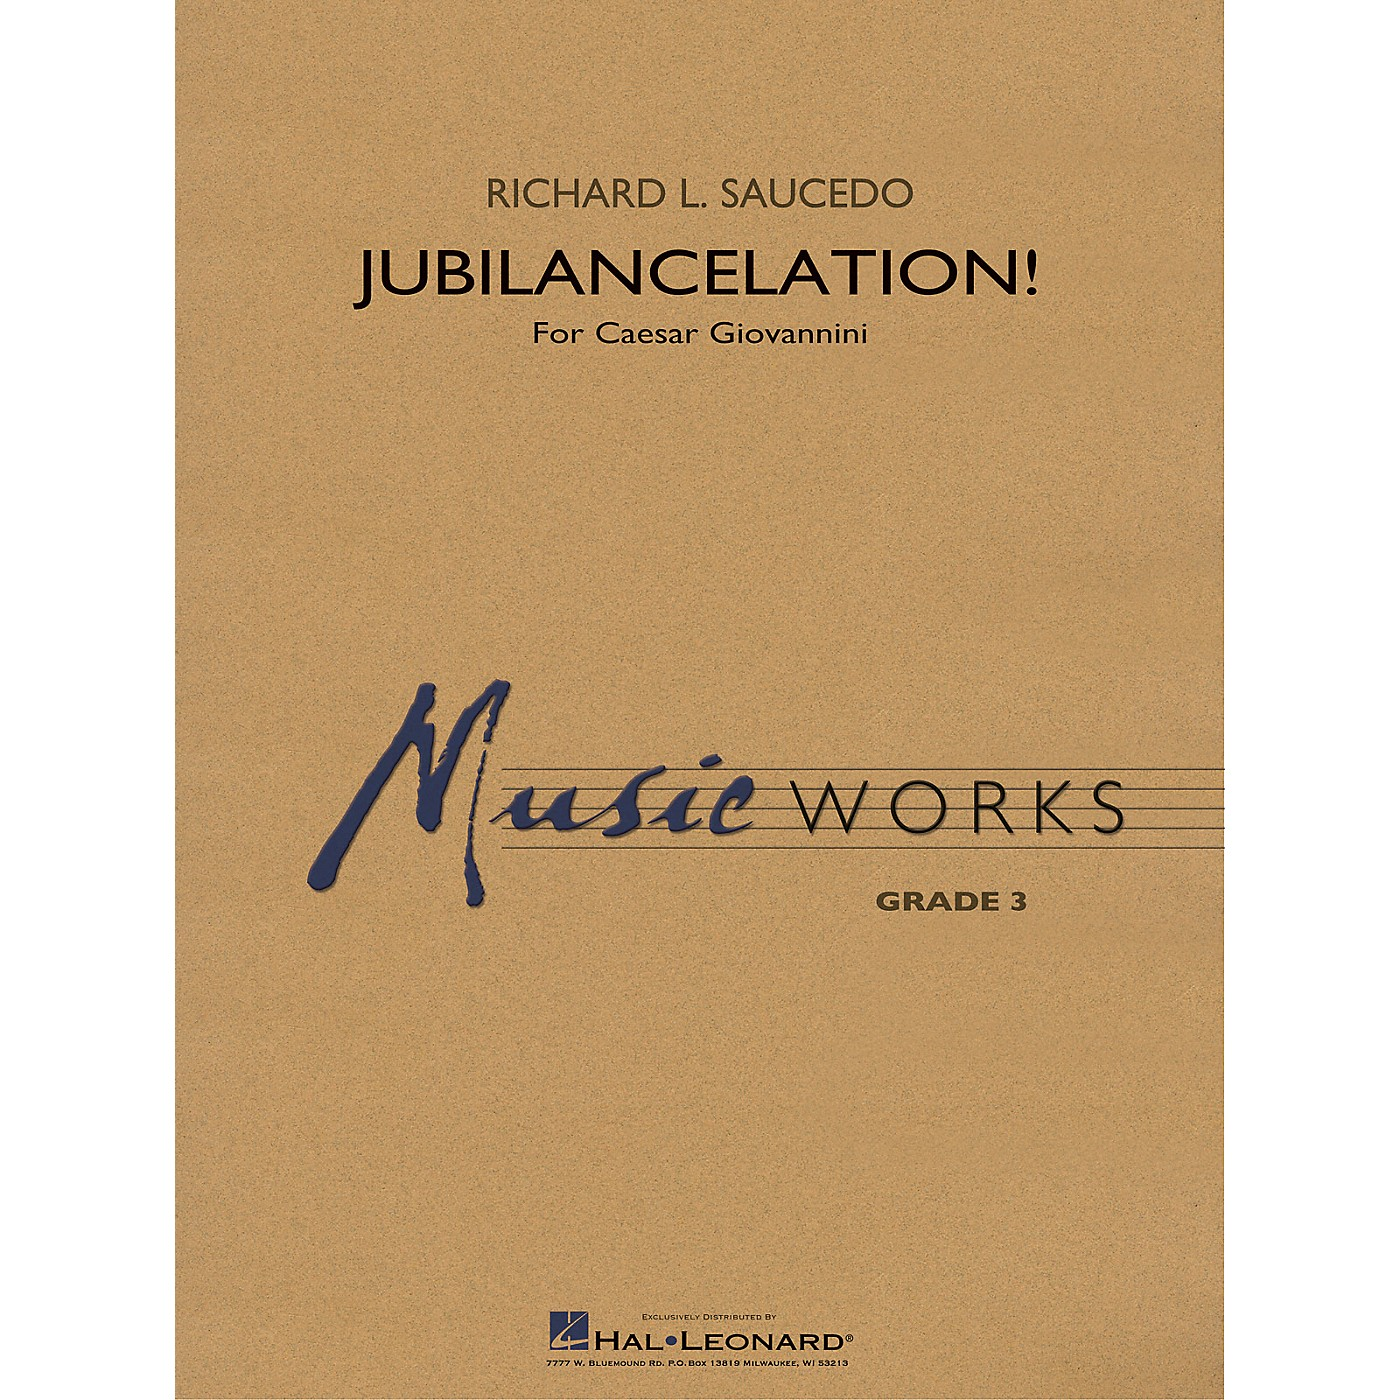 Hal Leonard Jubilancelation! (for Caesar Giovannini) Concert Band Level 2-3 composed by Richard L. Saucedo thumbnail